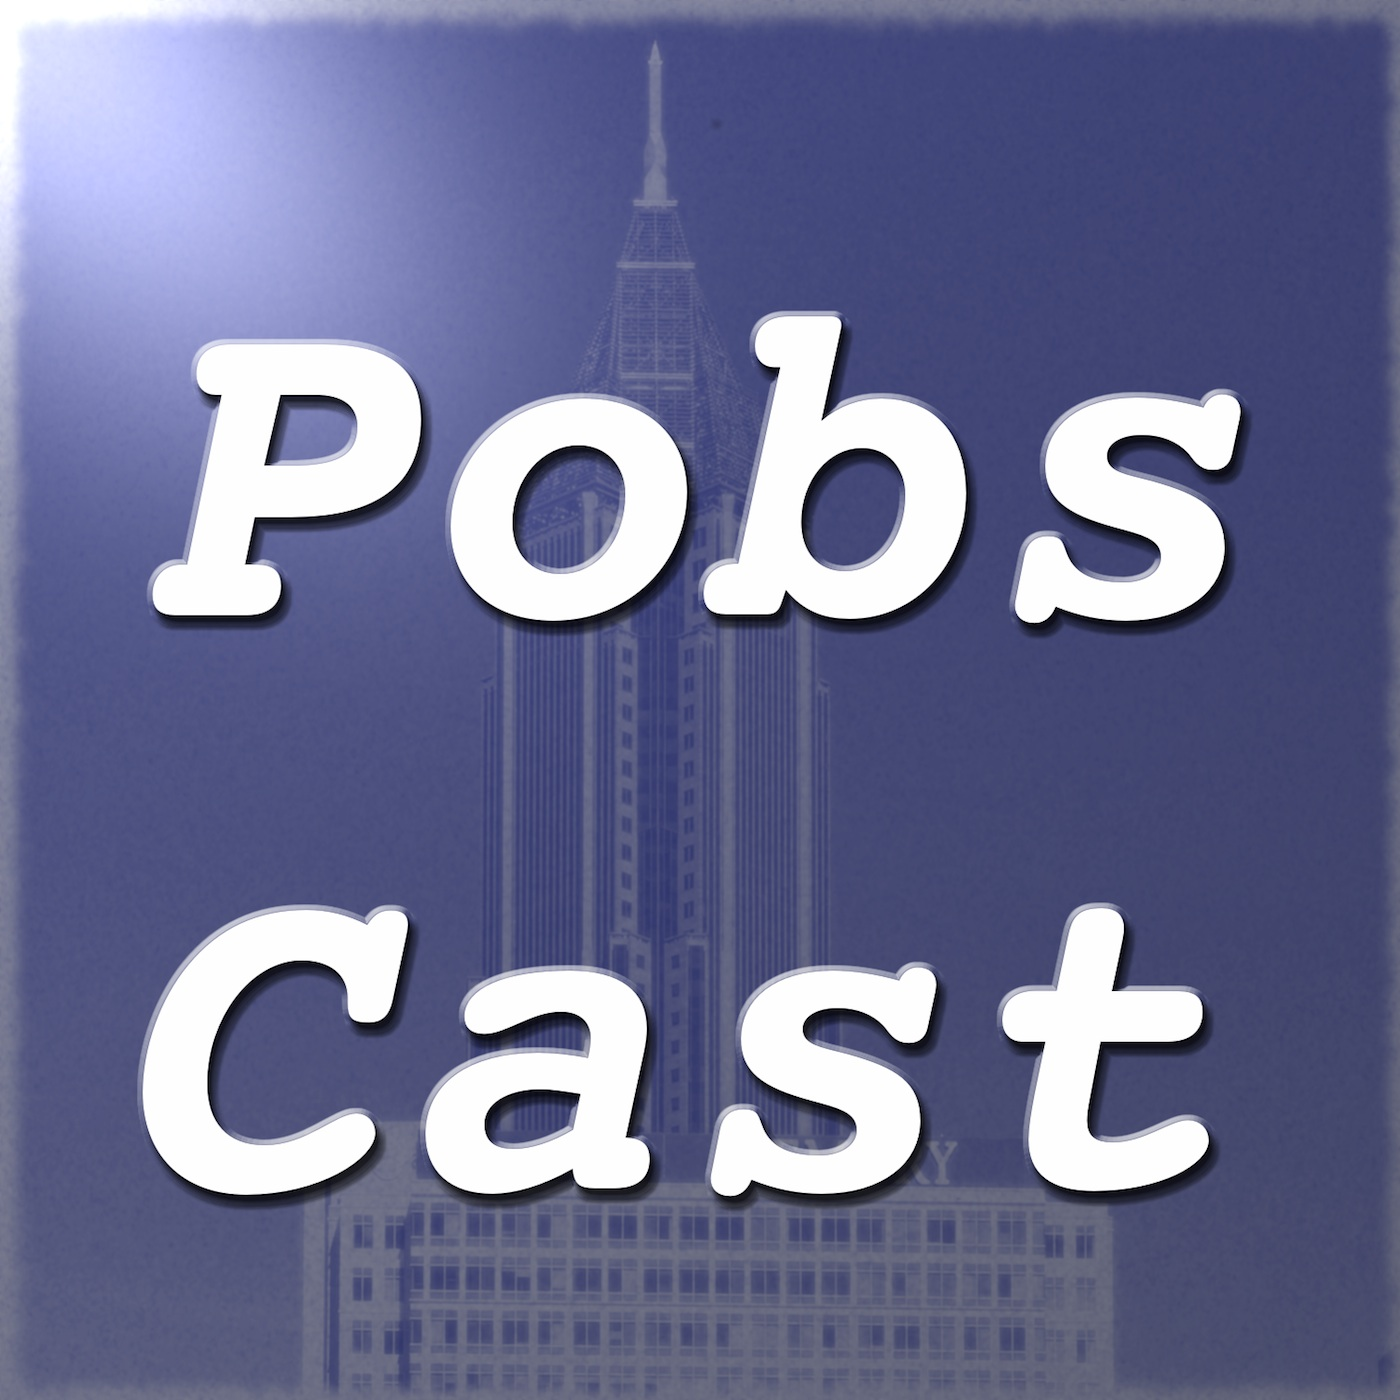 POBScast